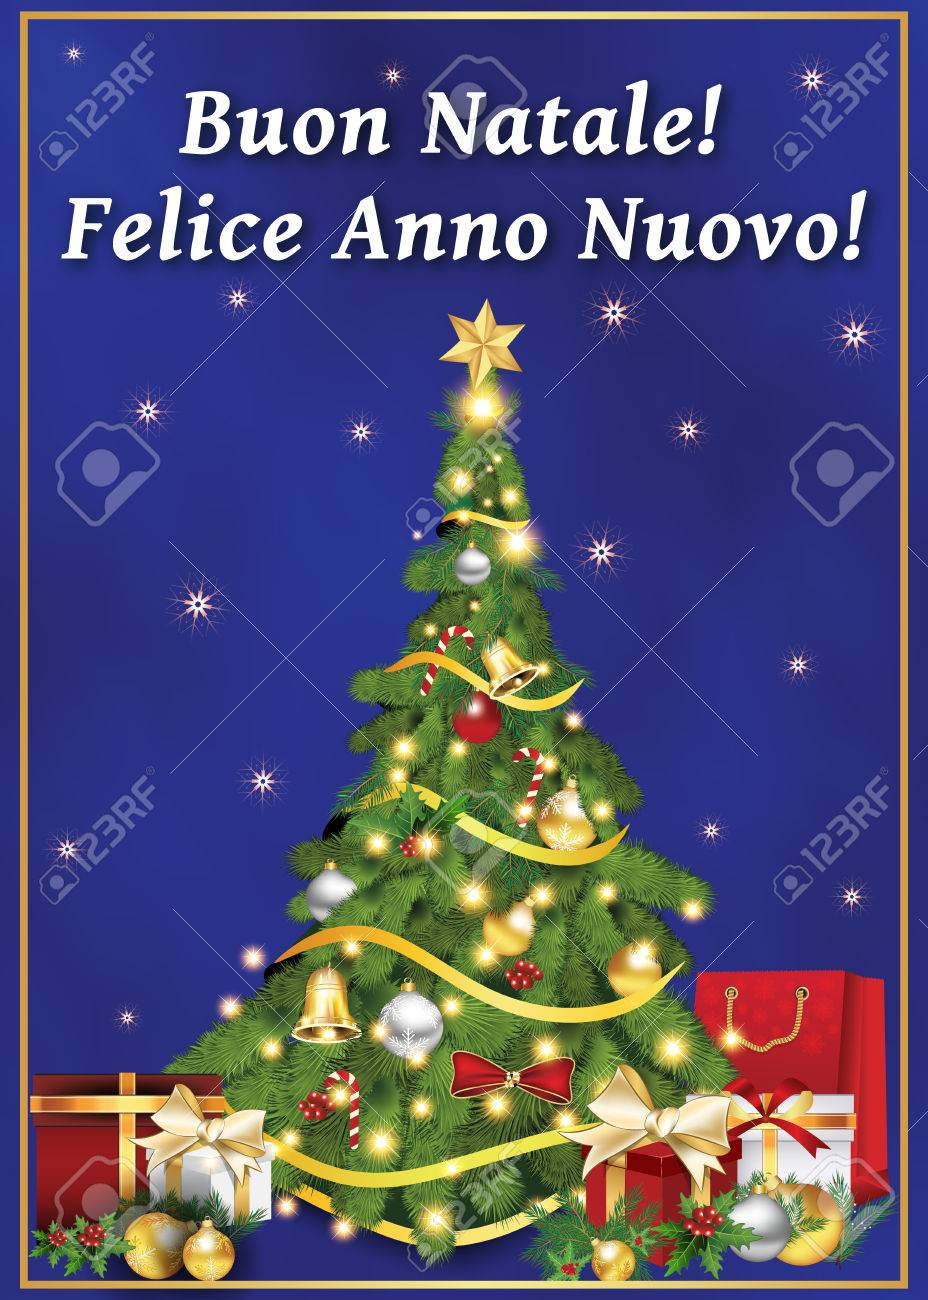 Buon natale e felice anno nuovo new year wishes in italian buon natale e felice anno nuovo new year wishes in italian language merry m4hsunfo